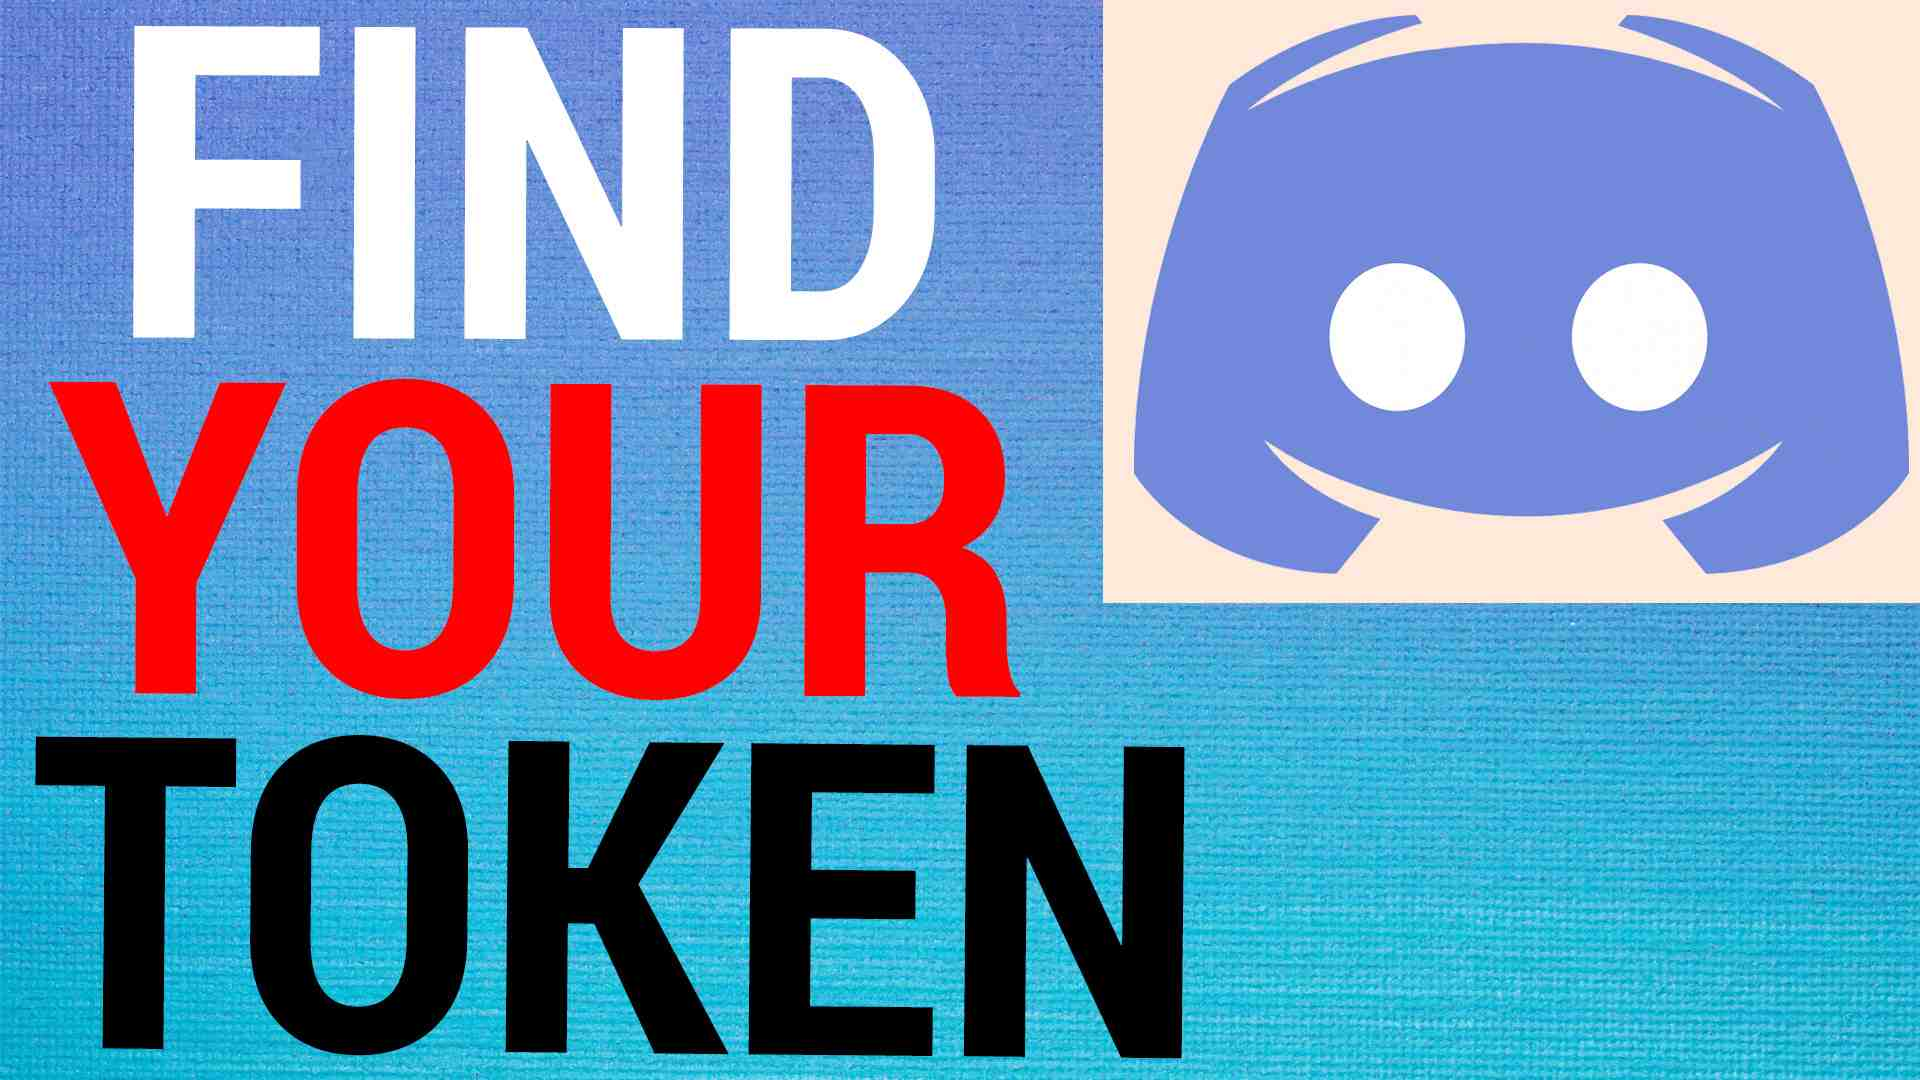 How To Find Your Discord Token